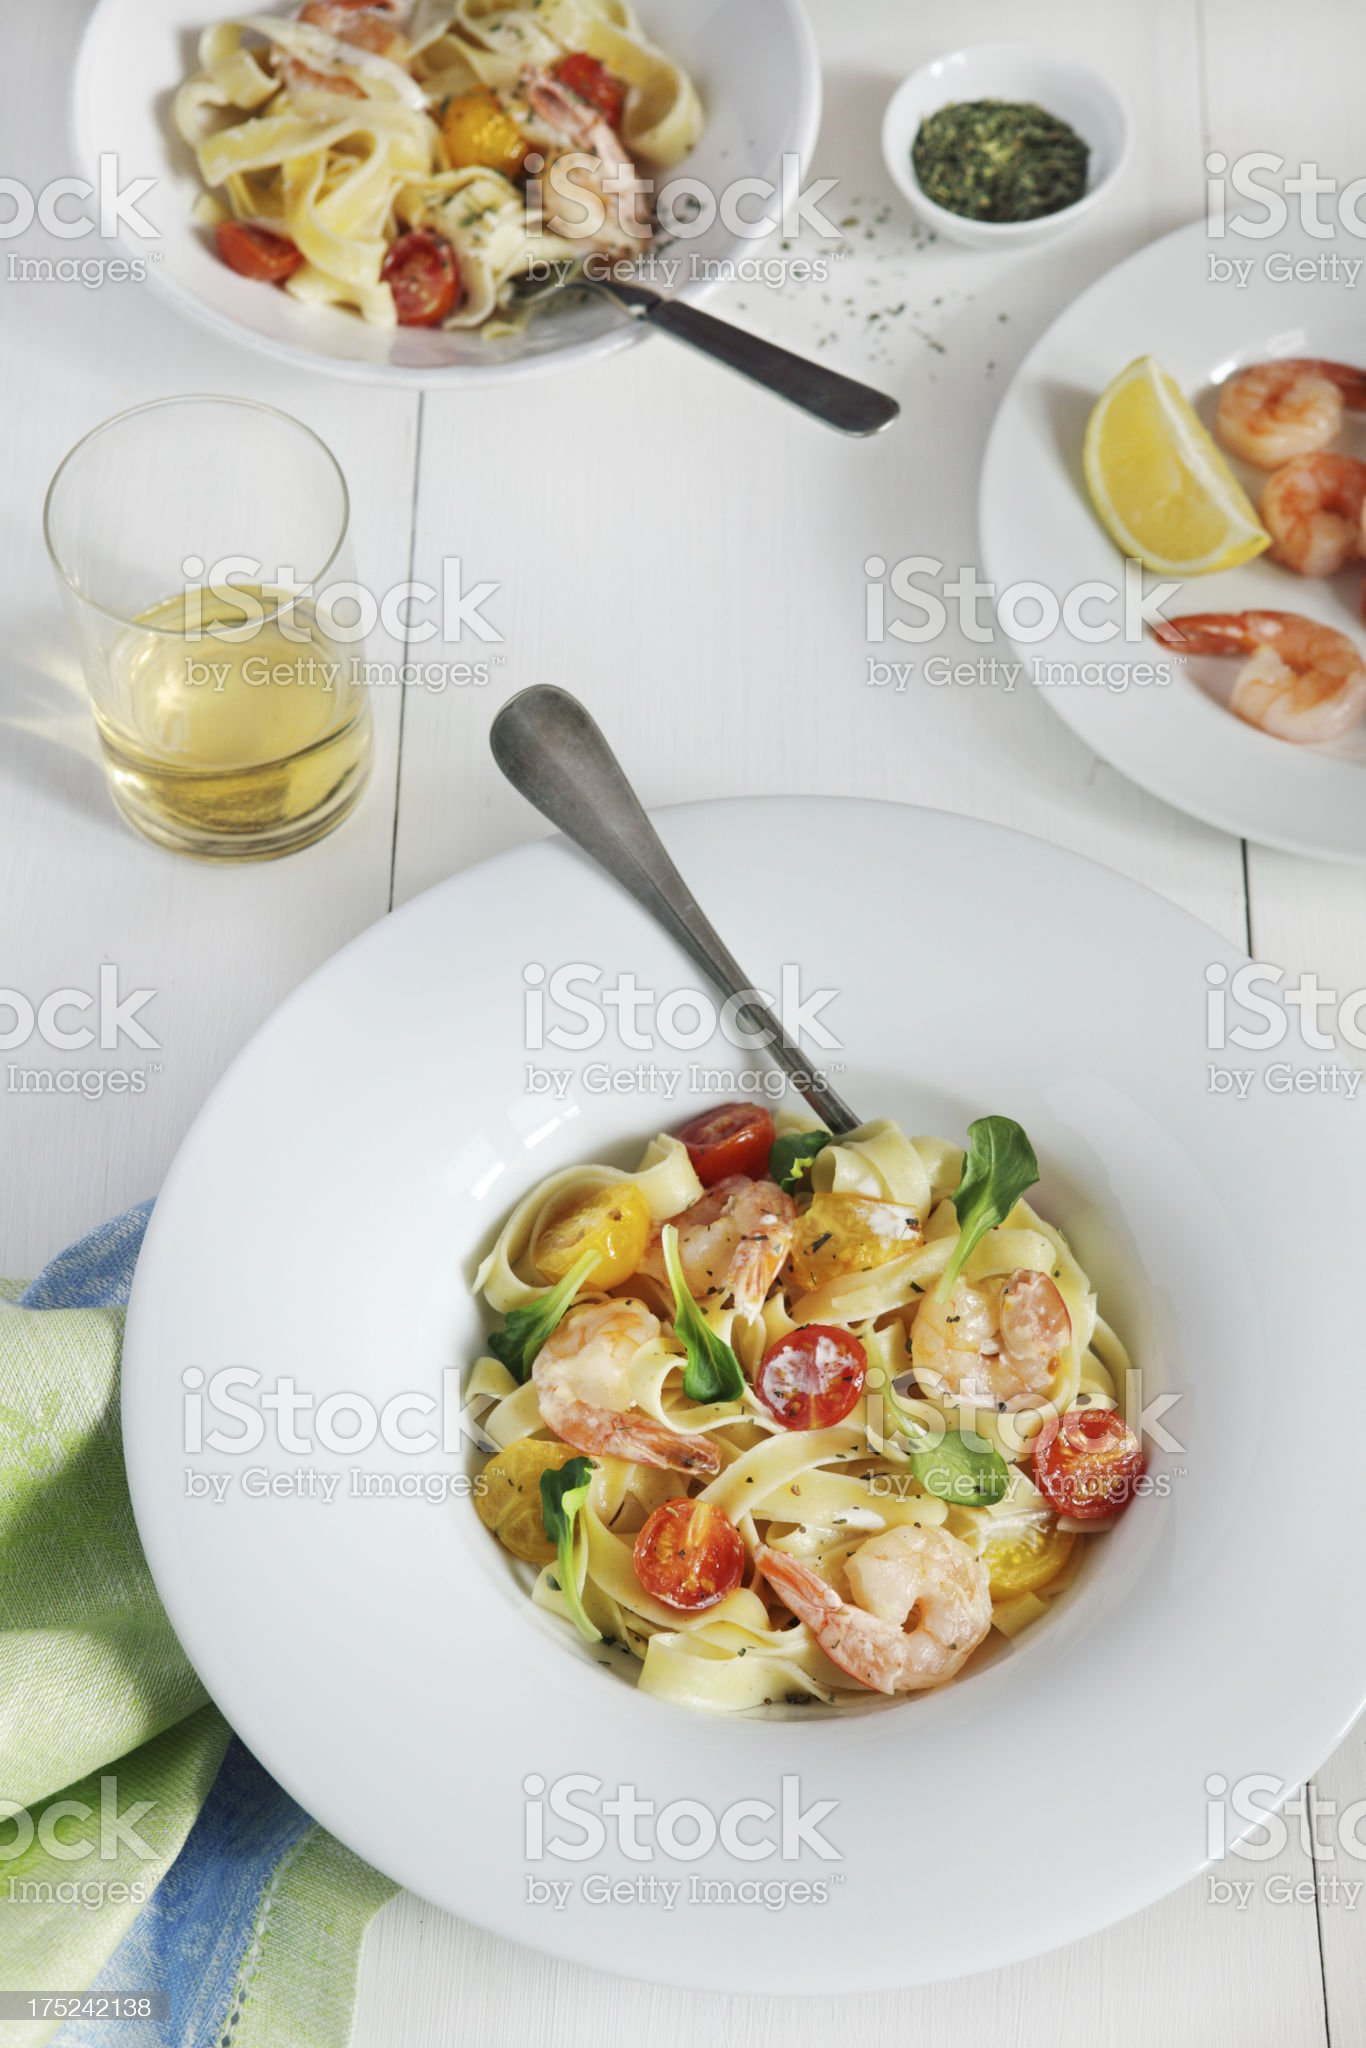 Fettuccine with shrimps, cherry tomatoes and cheese royalty-free stock photo